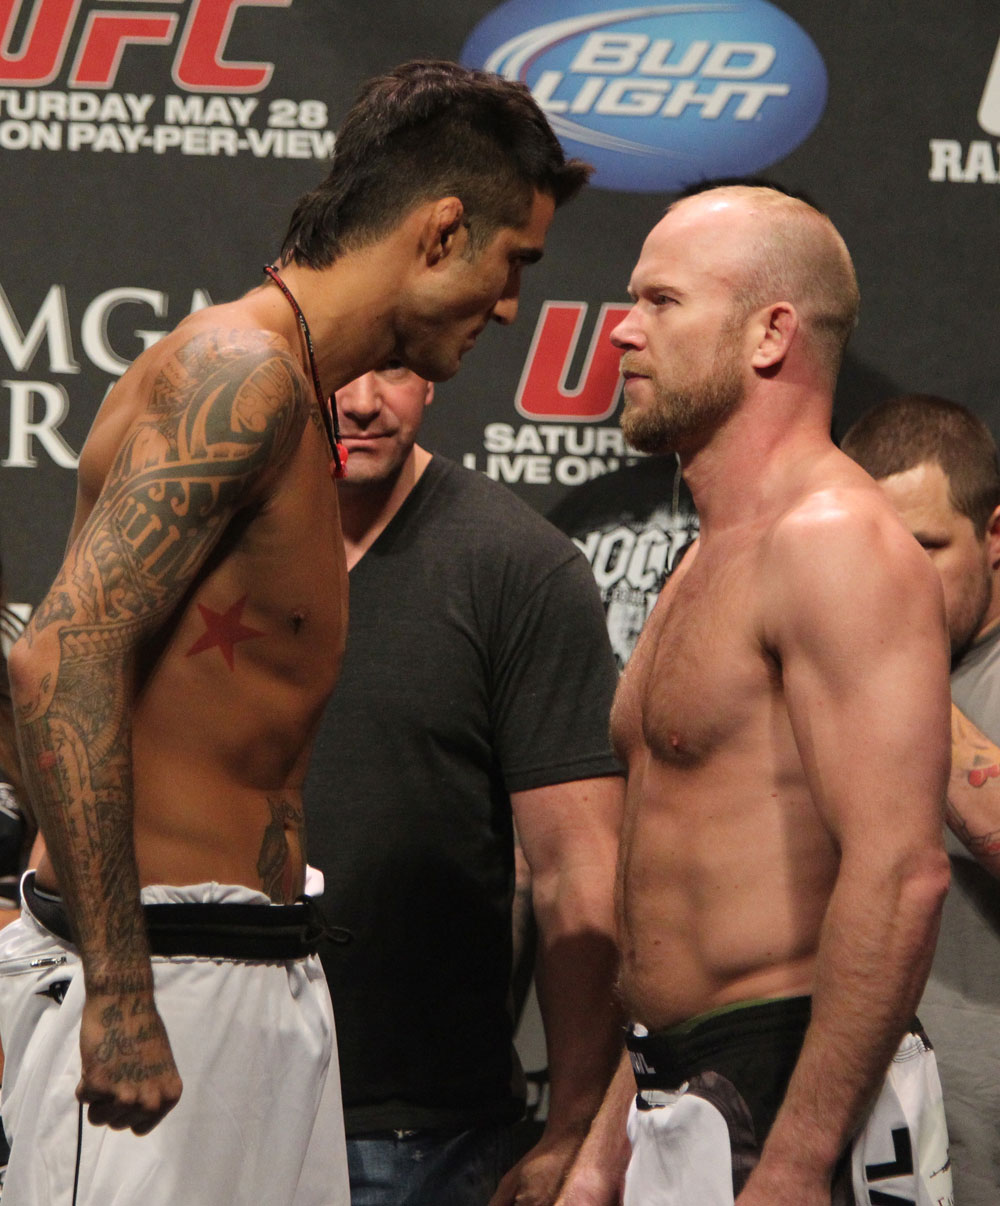 UFC 130 Weigh-ins: Kendall Grove vs. Tim Boetsch